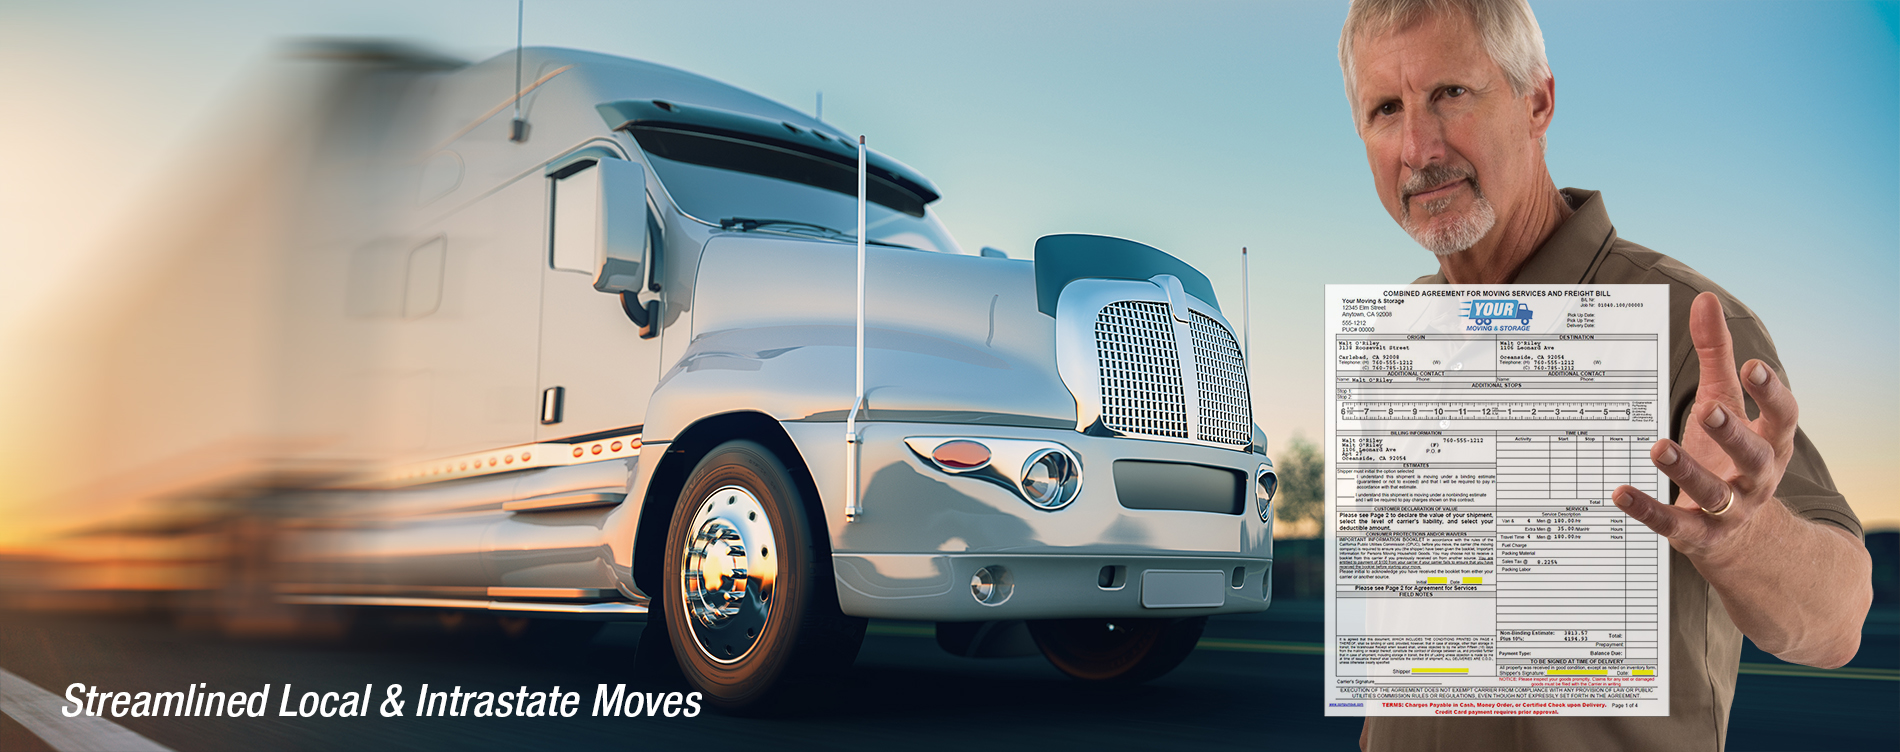 Streamlined Local and Intrastate Moves